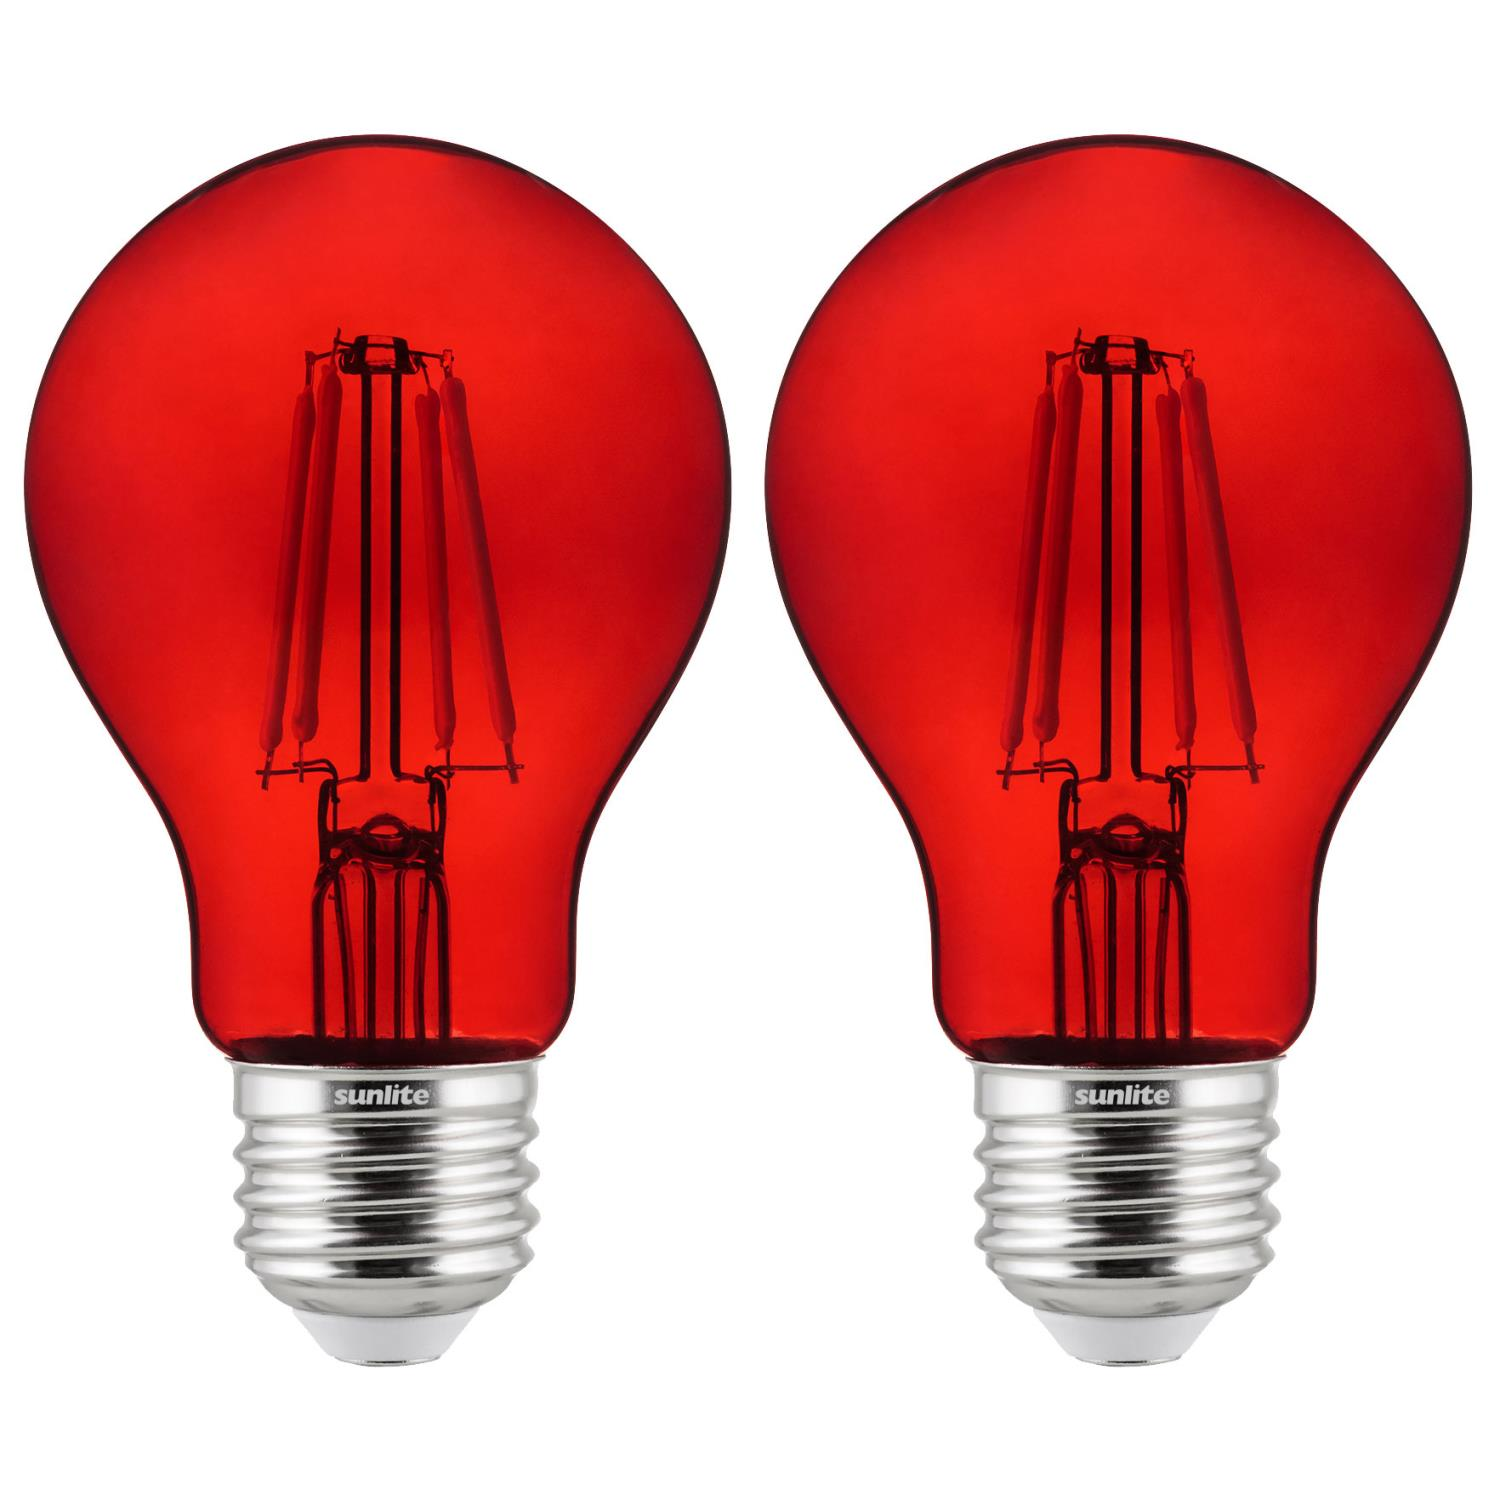 2-Pack Sunlite LED Transparent Red A19 Filament Bulbs, 4.5 Watts, Dimmable, UL Listed